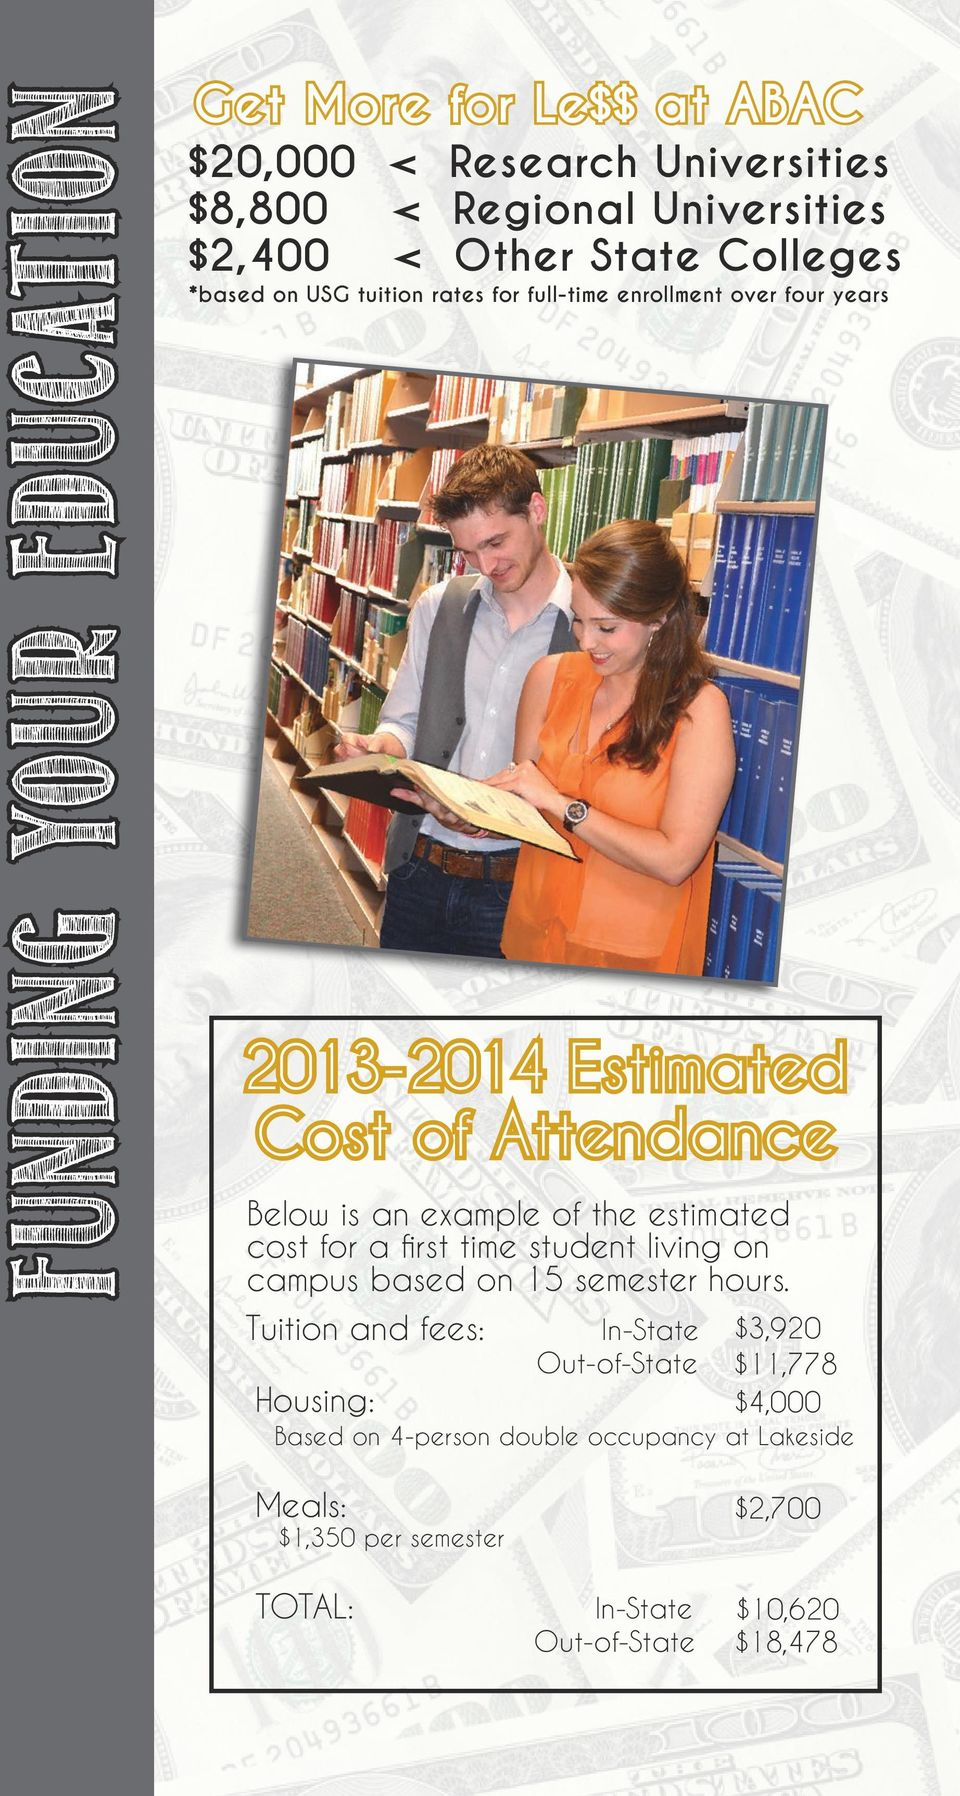 the estimated cost for a first time student living on campus based on 15 semester hours.